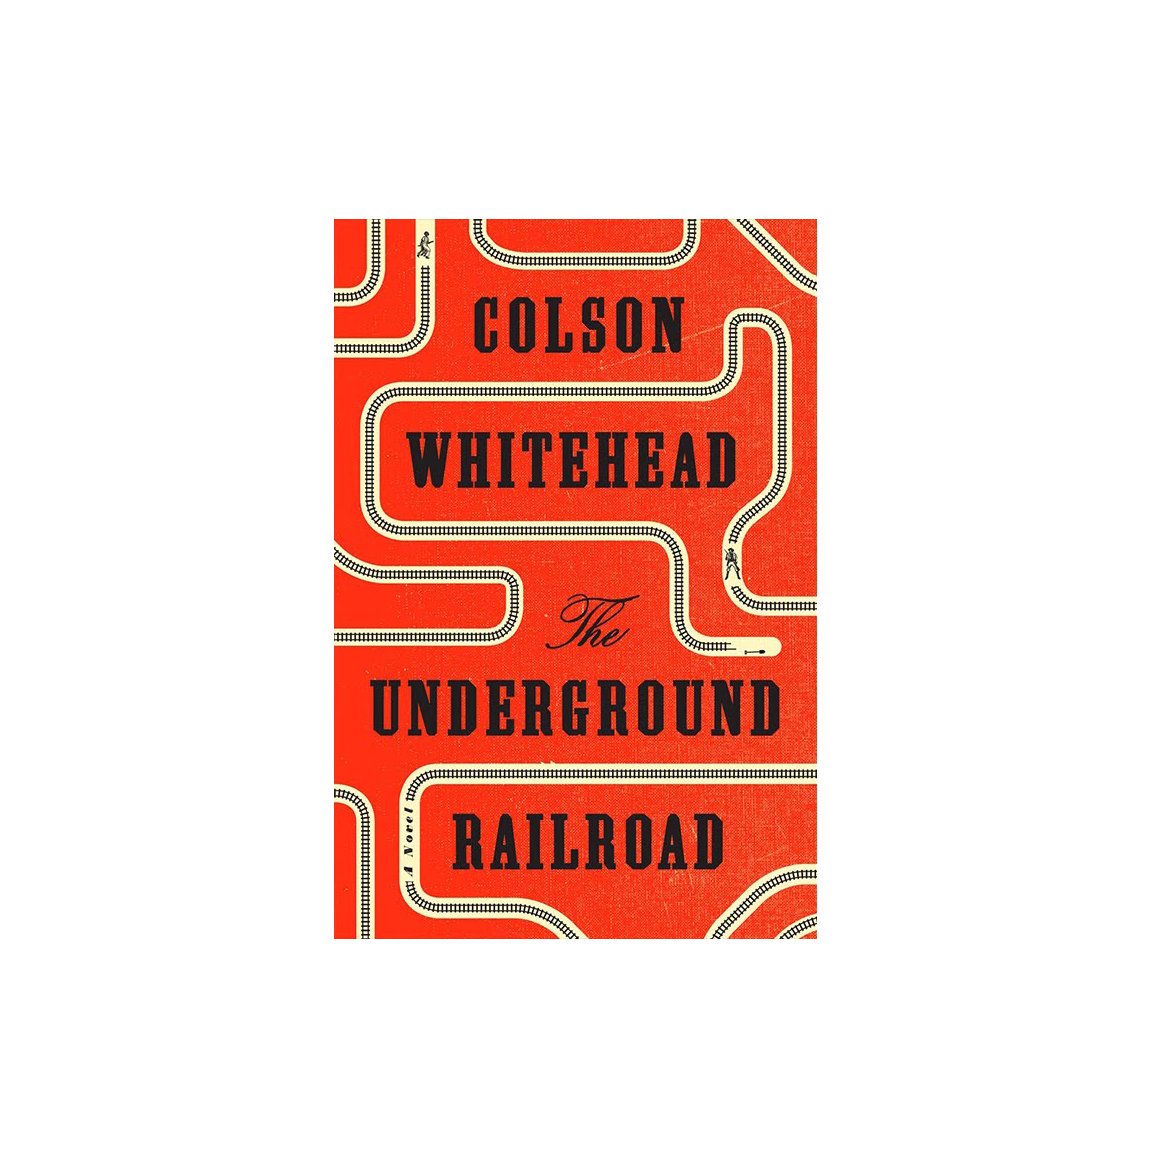 Underground Railroad, by Colson Whitehead